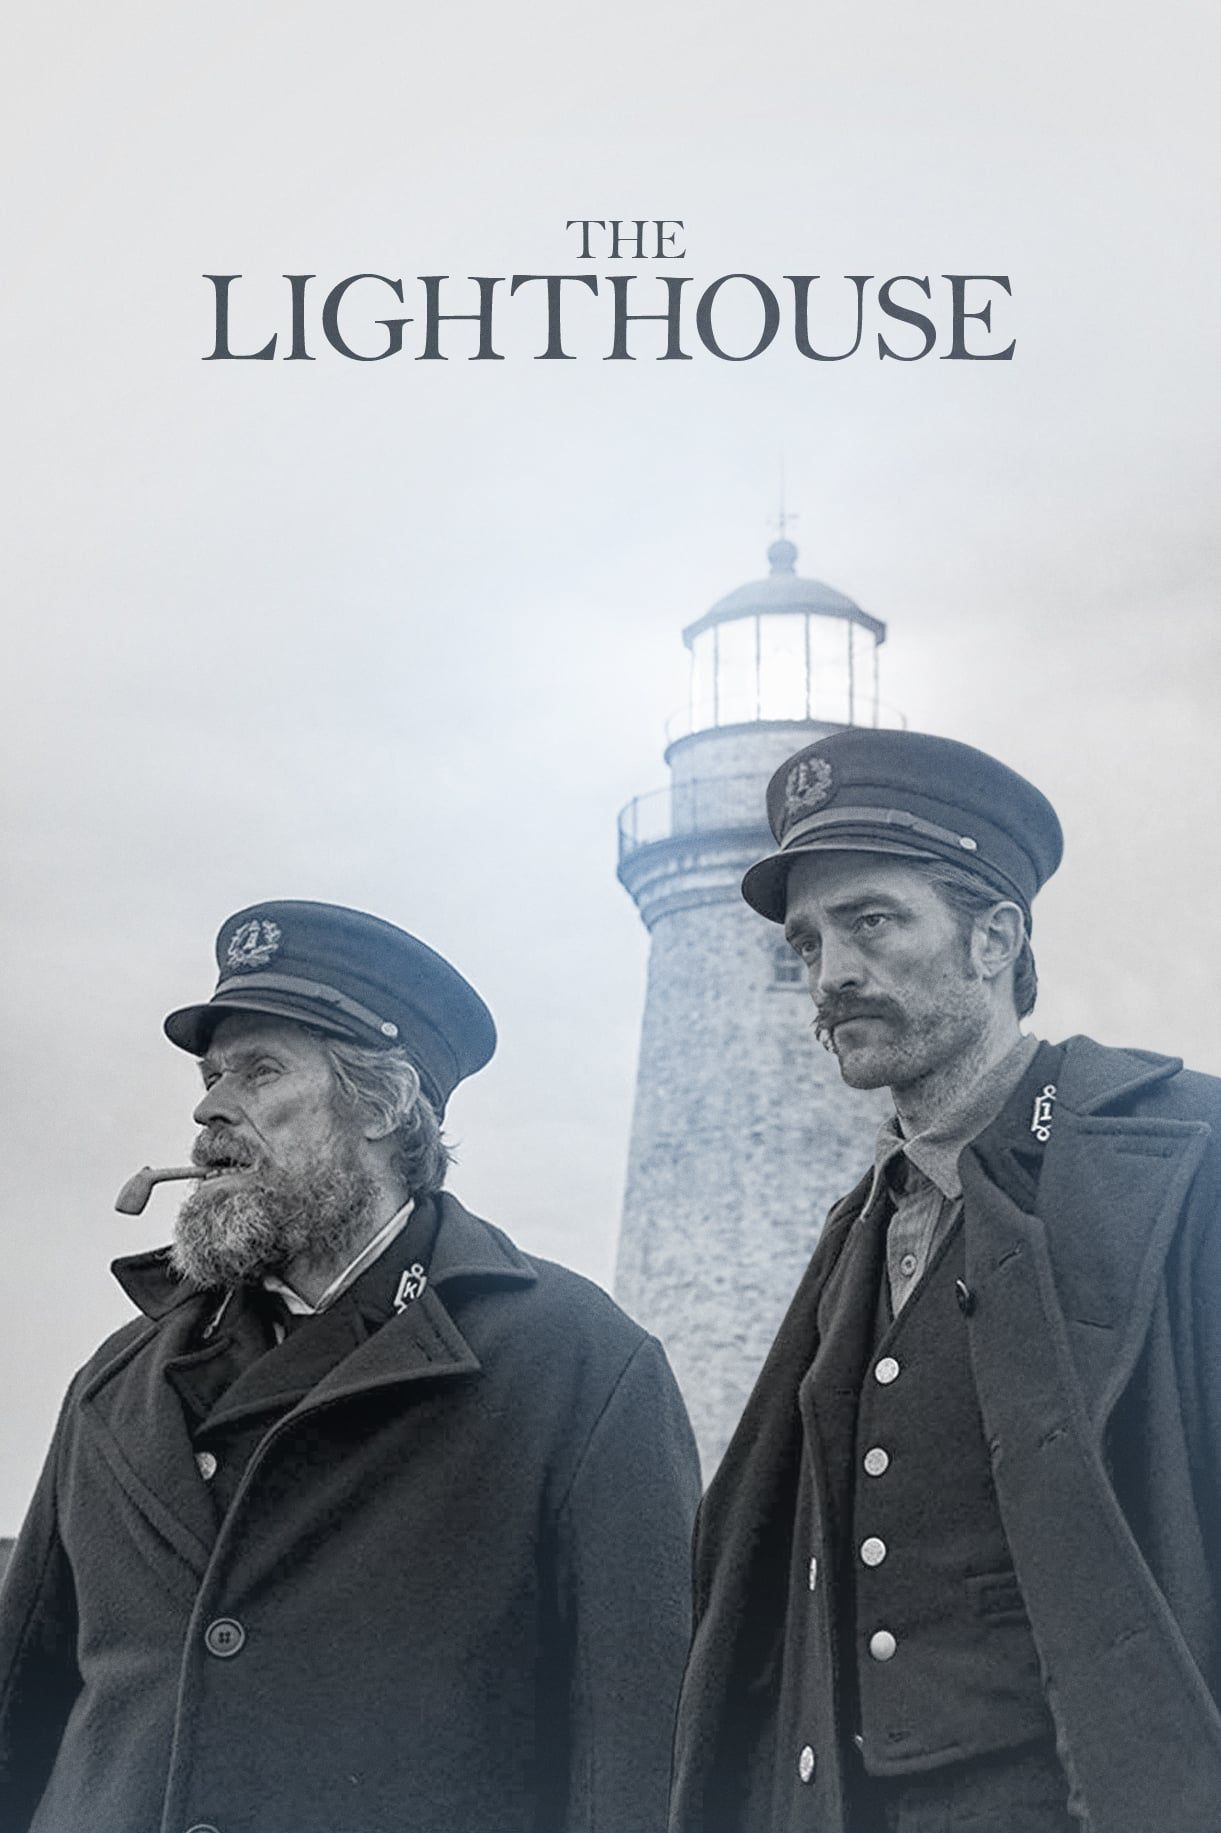 The Lighthouse Filme Cmplet Dublad Hd Lighthouse Movie Lighthouse Robert Pattinson